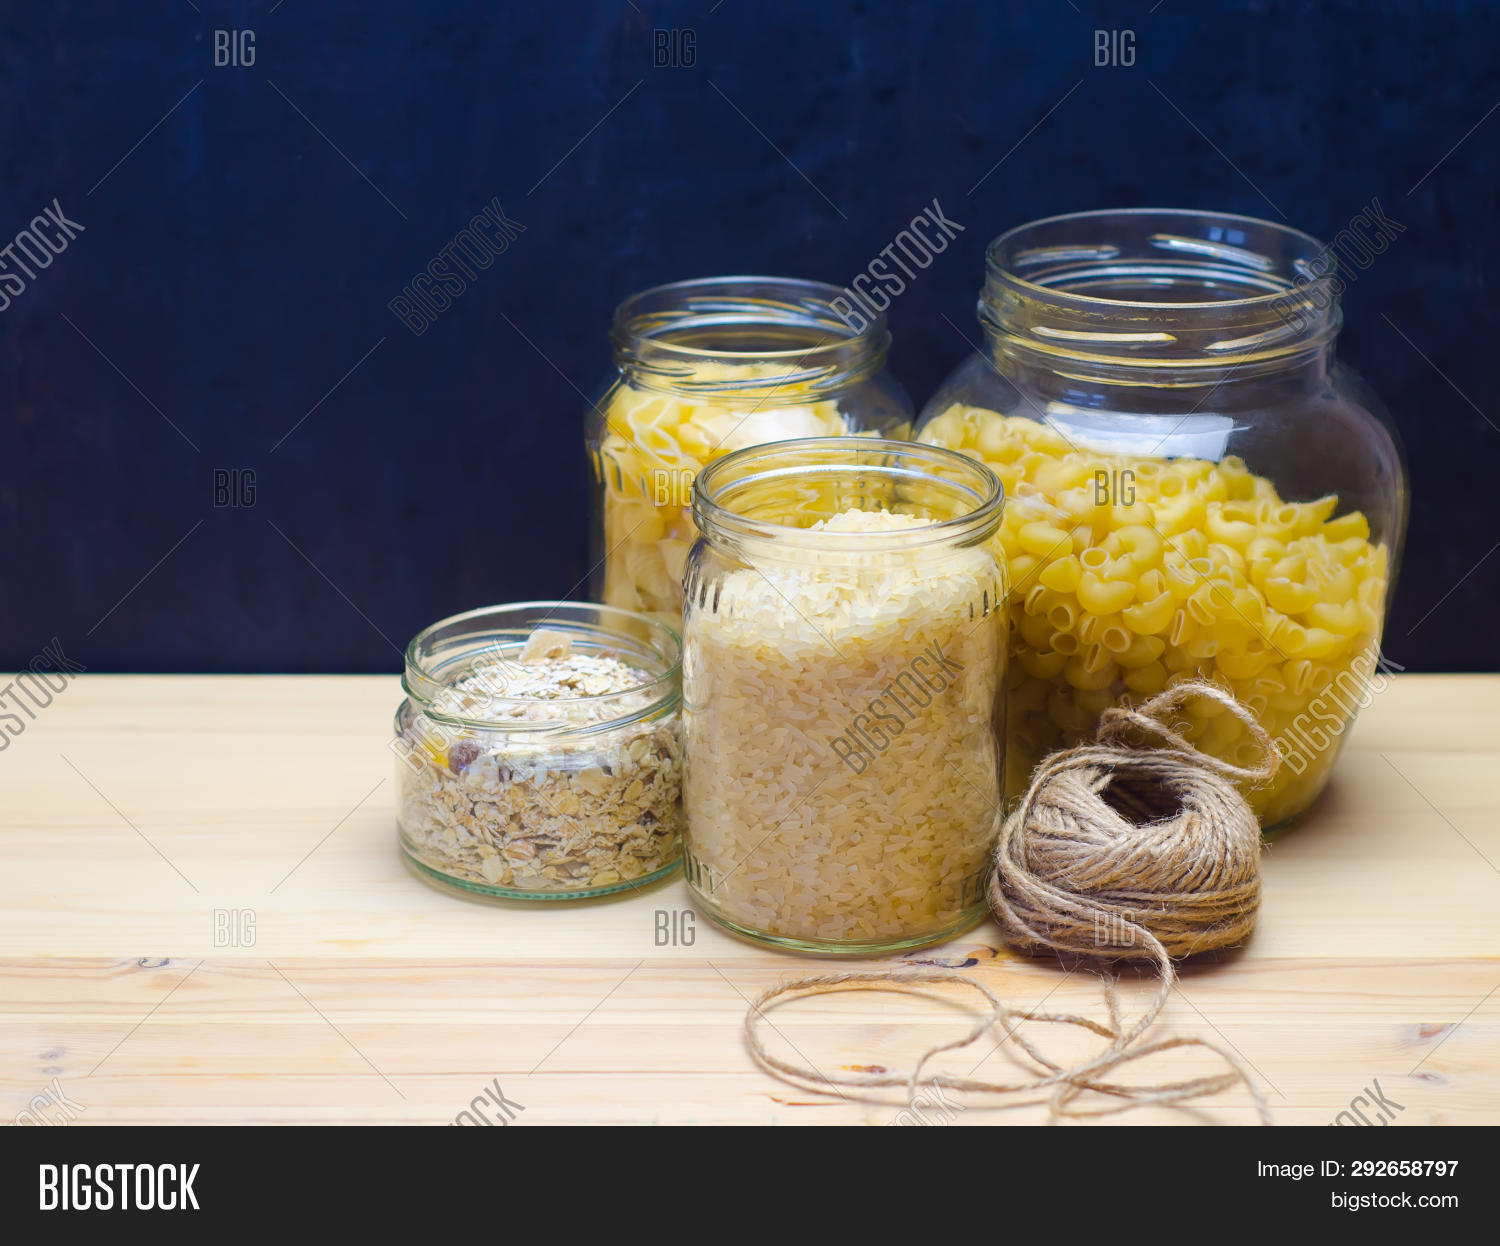 Natural Packaging Image Photo Free Trial Bigstock